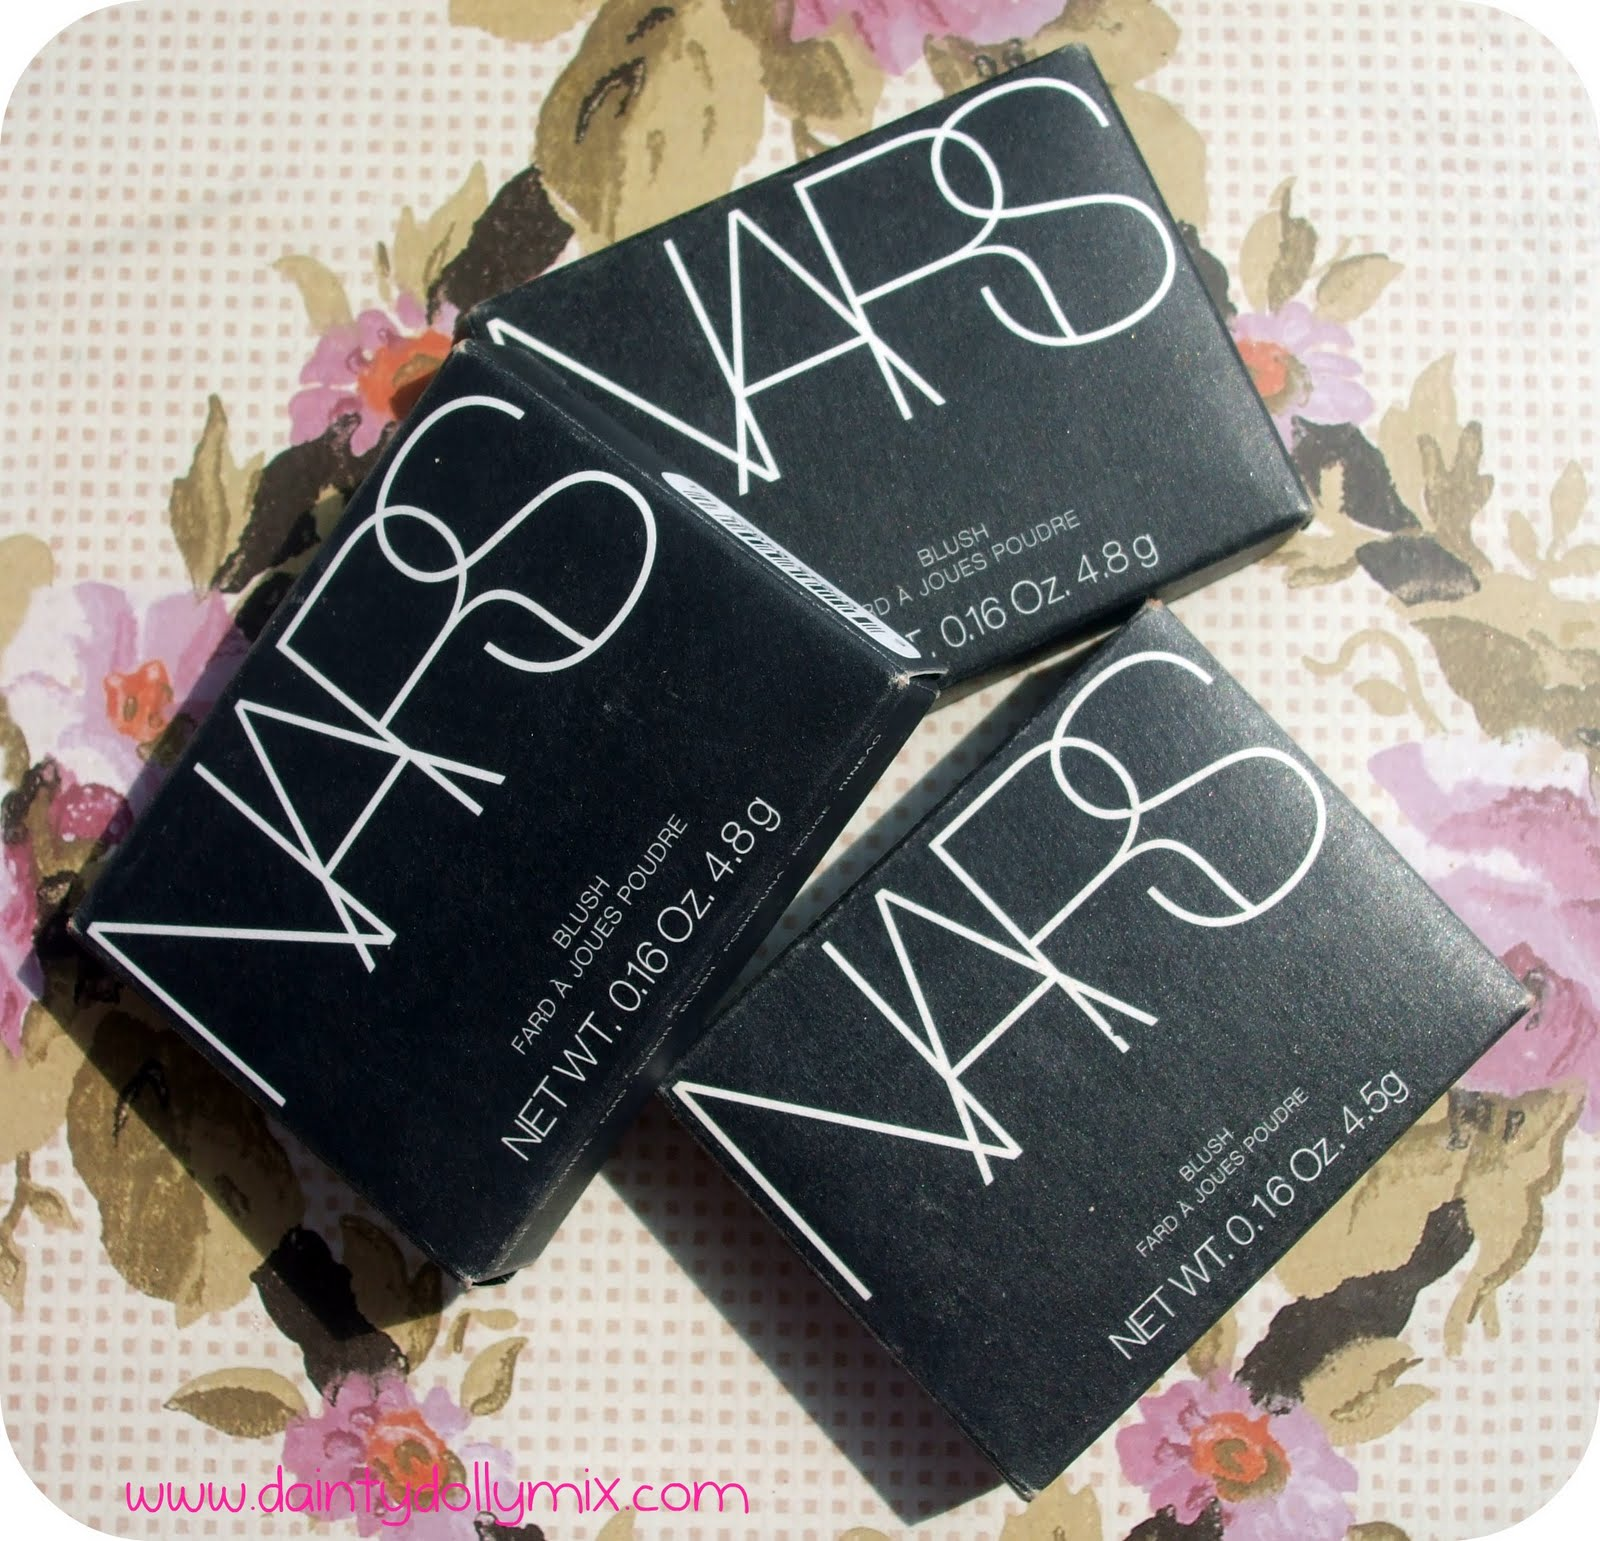 Dainty Dollymix Uk Beauty Blog Nars Blush Collection On Original Angelika